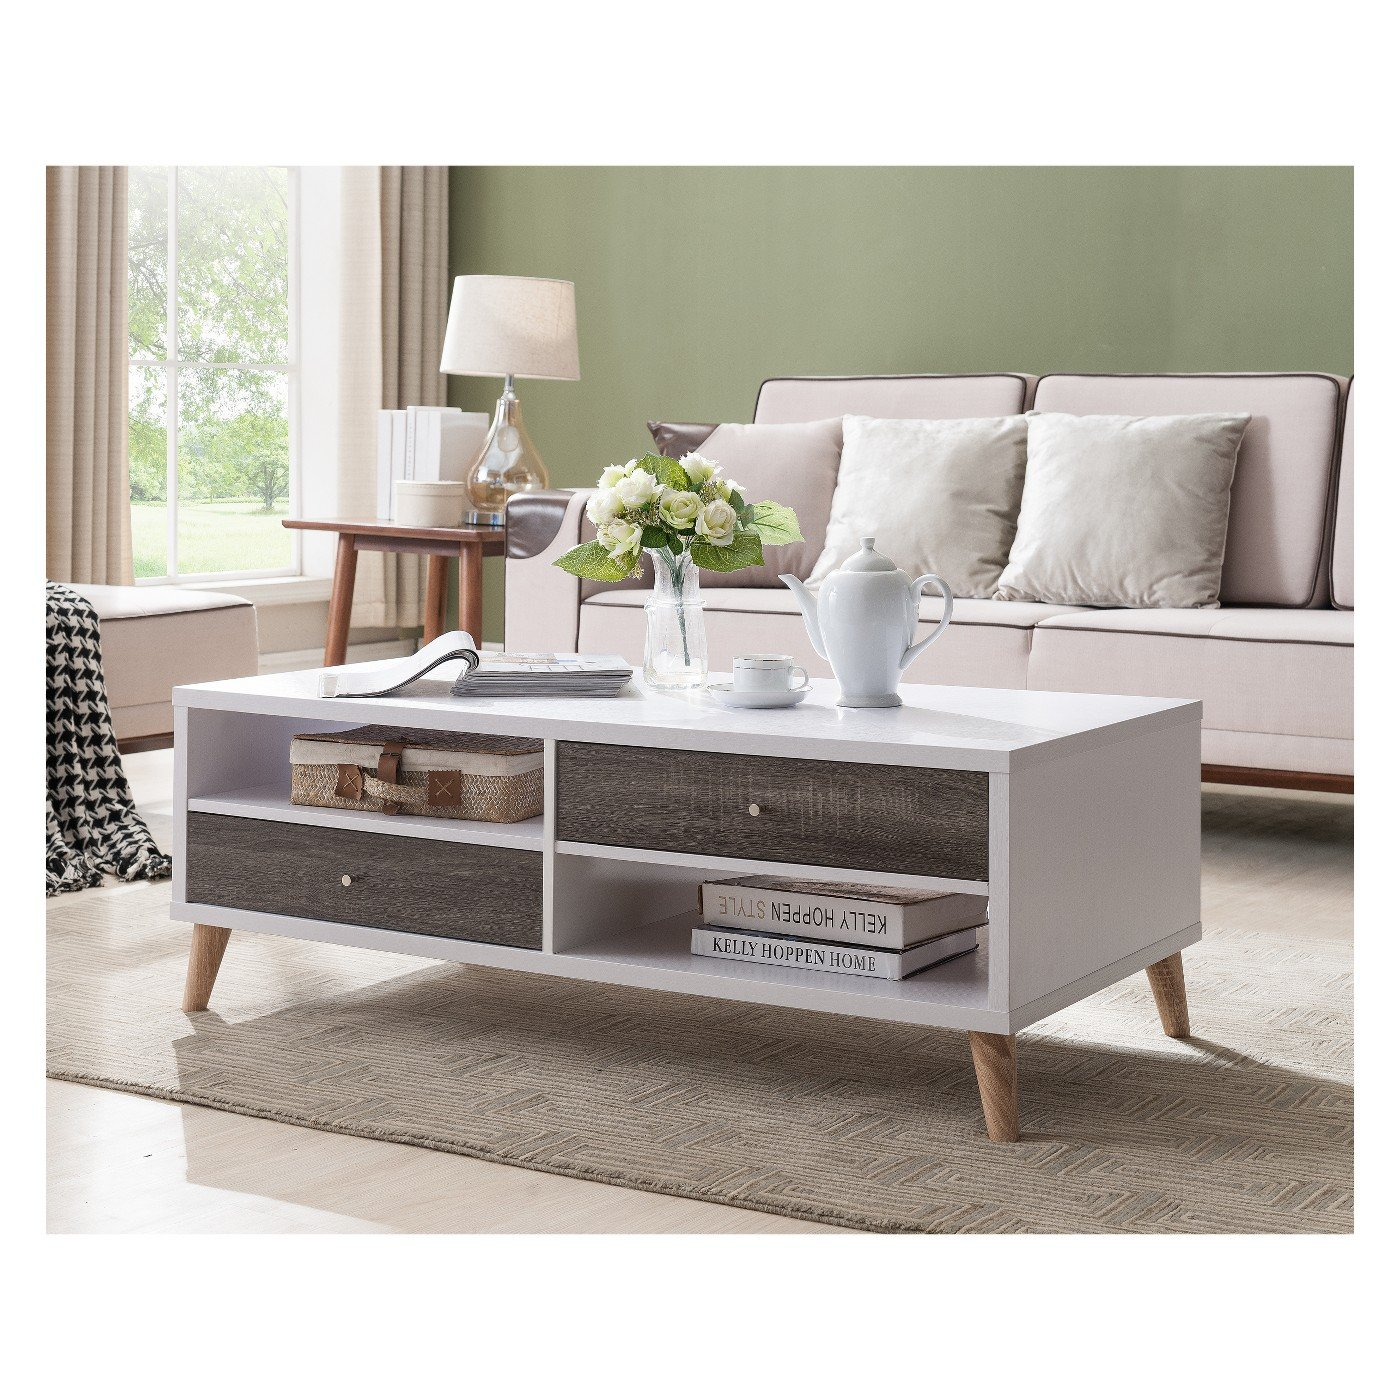 Surprising Amazon Com Weller Transitional Two Drawers Coffee Table Machost Co Dining Chair Design Ideas Machostcouk